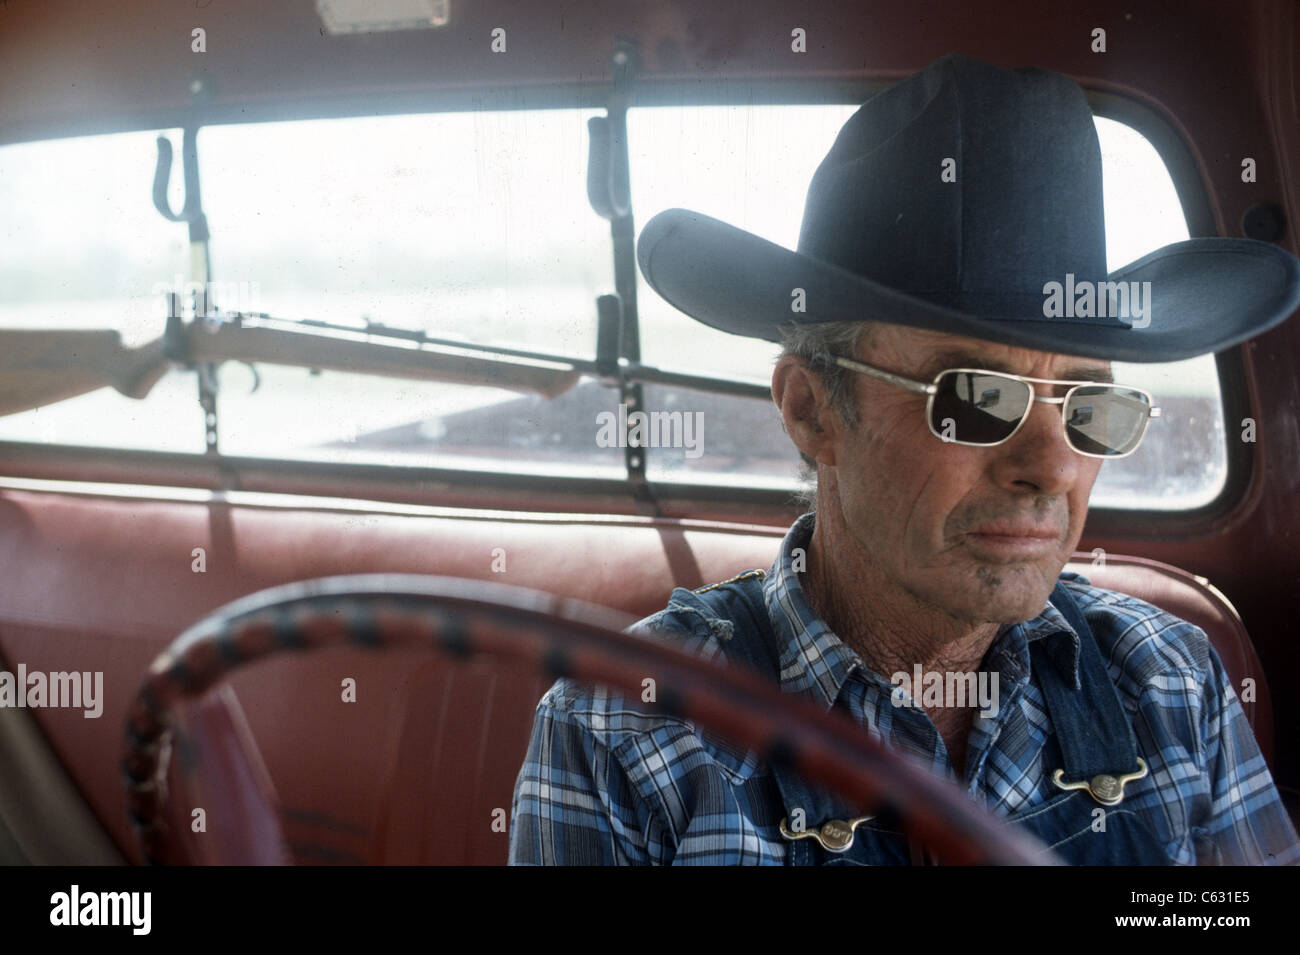 Cowboy With Sunglasses Stock Photos Amp Cowboy With